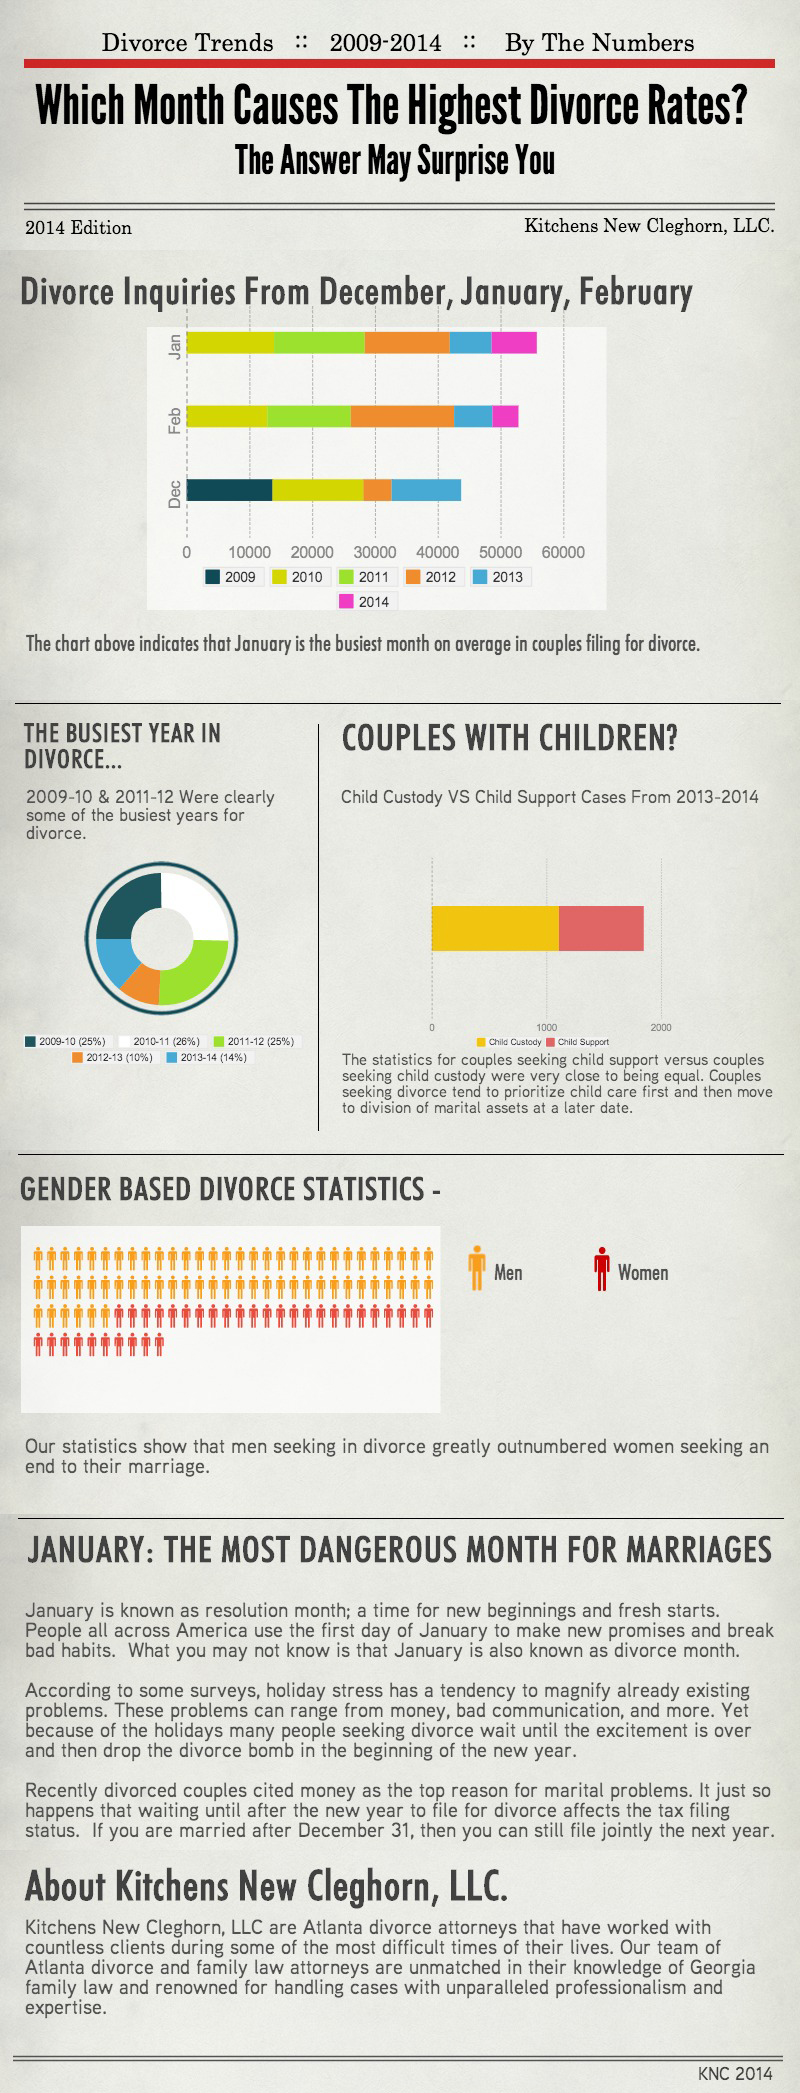 Which Month Causes the Highest Divorce Rates?